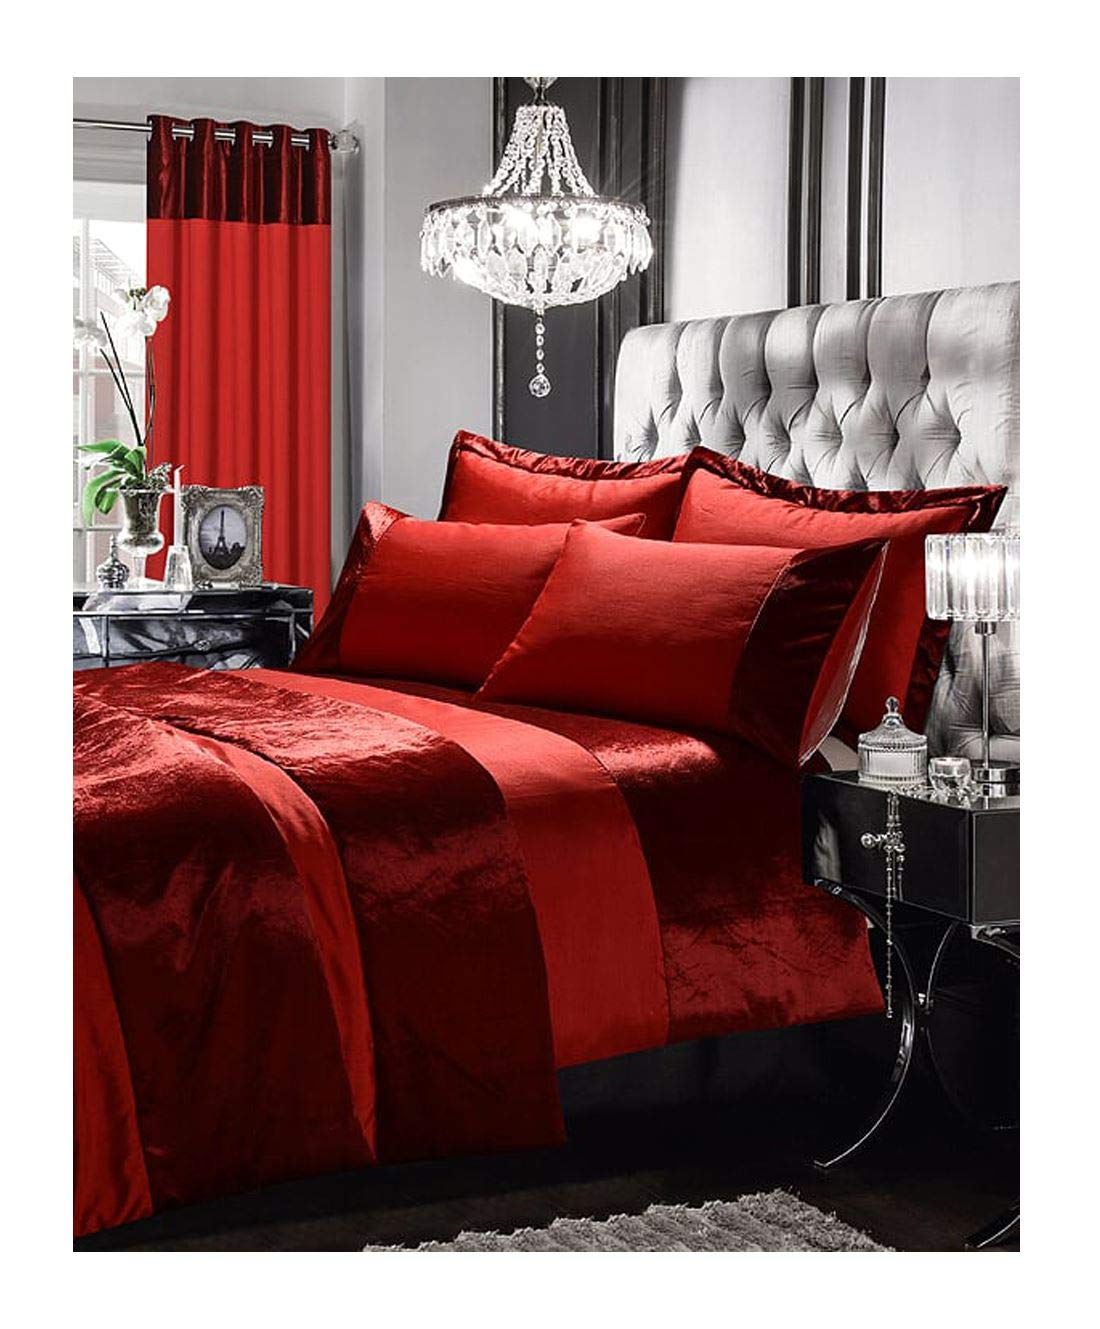 Rimi Hanger Luxury Gran Reno Silk Crushed Velvet Duvet Pillow Set Matching Curtains Throws Curtains Red One Size (66x54 Inch)